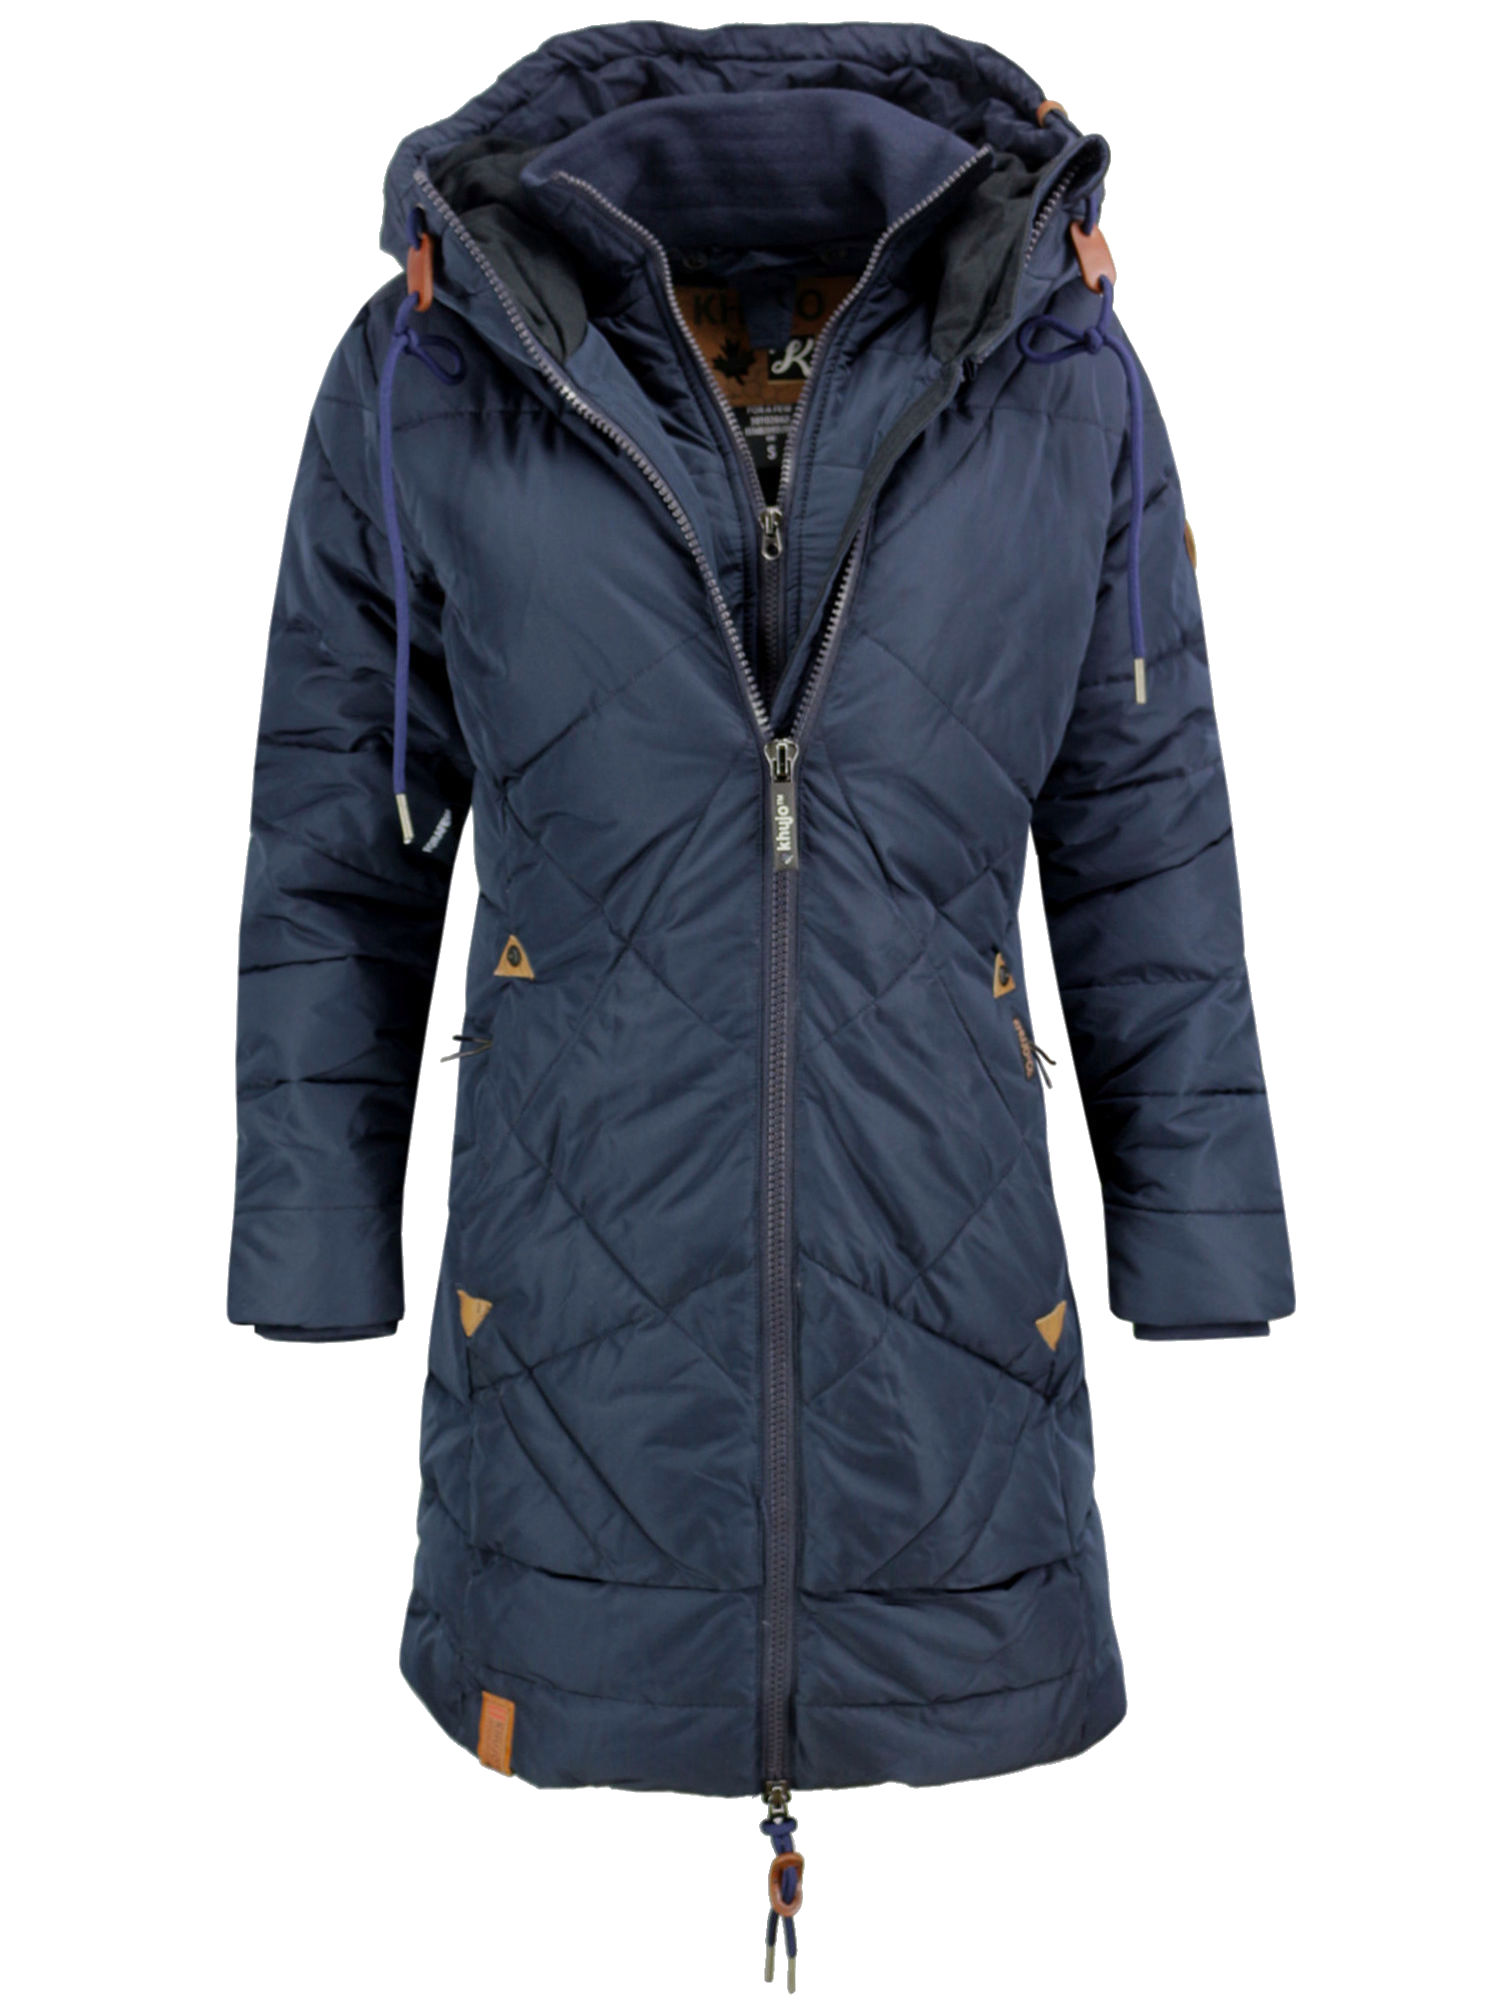 sports shoes 7835b 0b3c3 KHUJO Damen Wintermantel Steppmantel Mantel Jacke ANNABELL Winter Parka  Kapuze blau